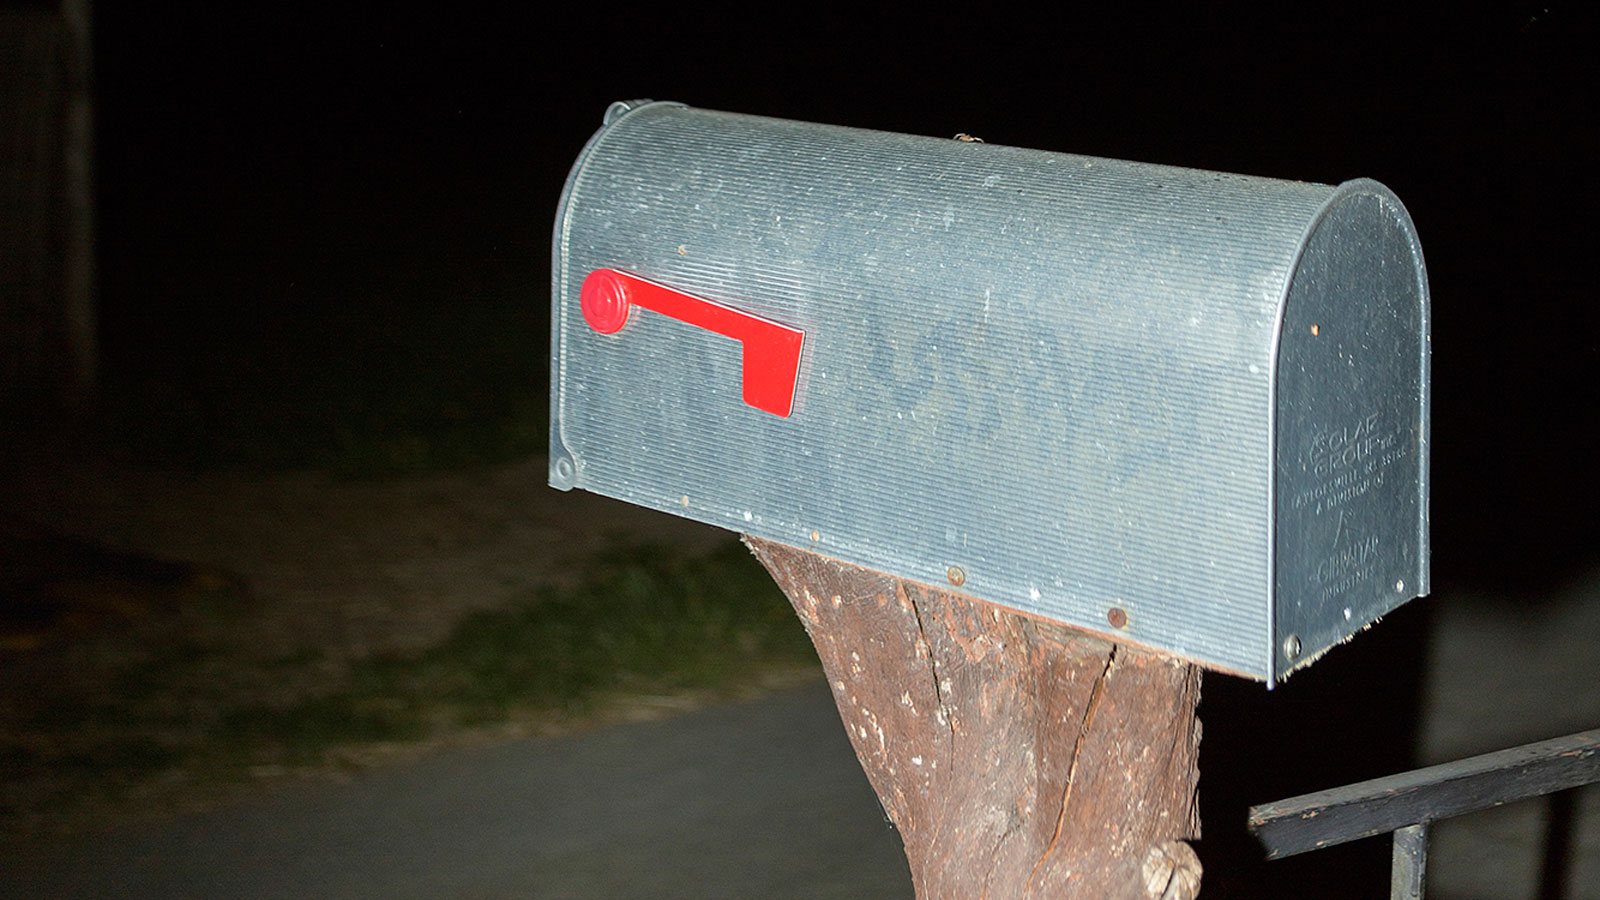 Mailbox (detail), from the series Cowboy by choice © Ulrike Schmid